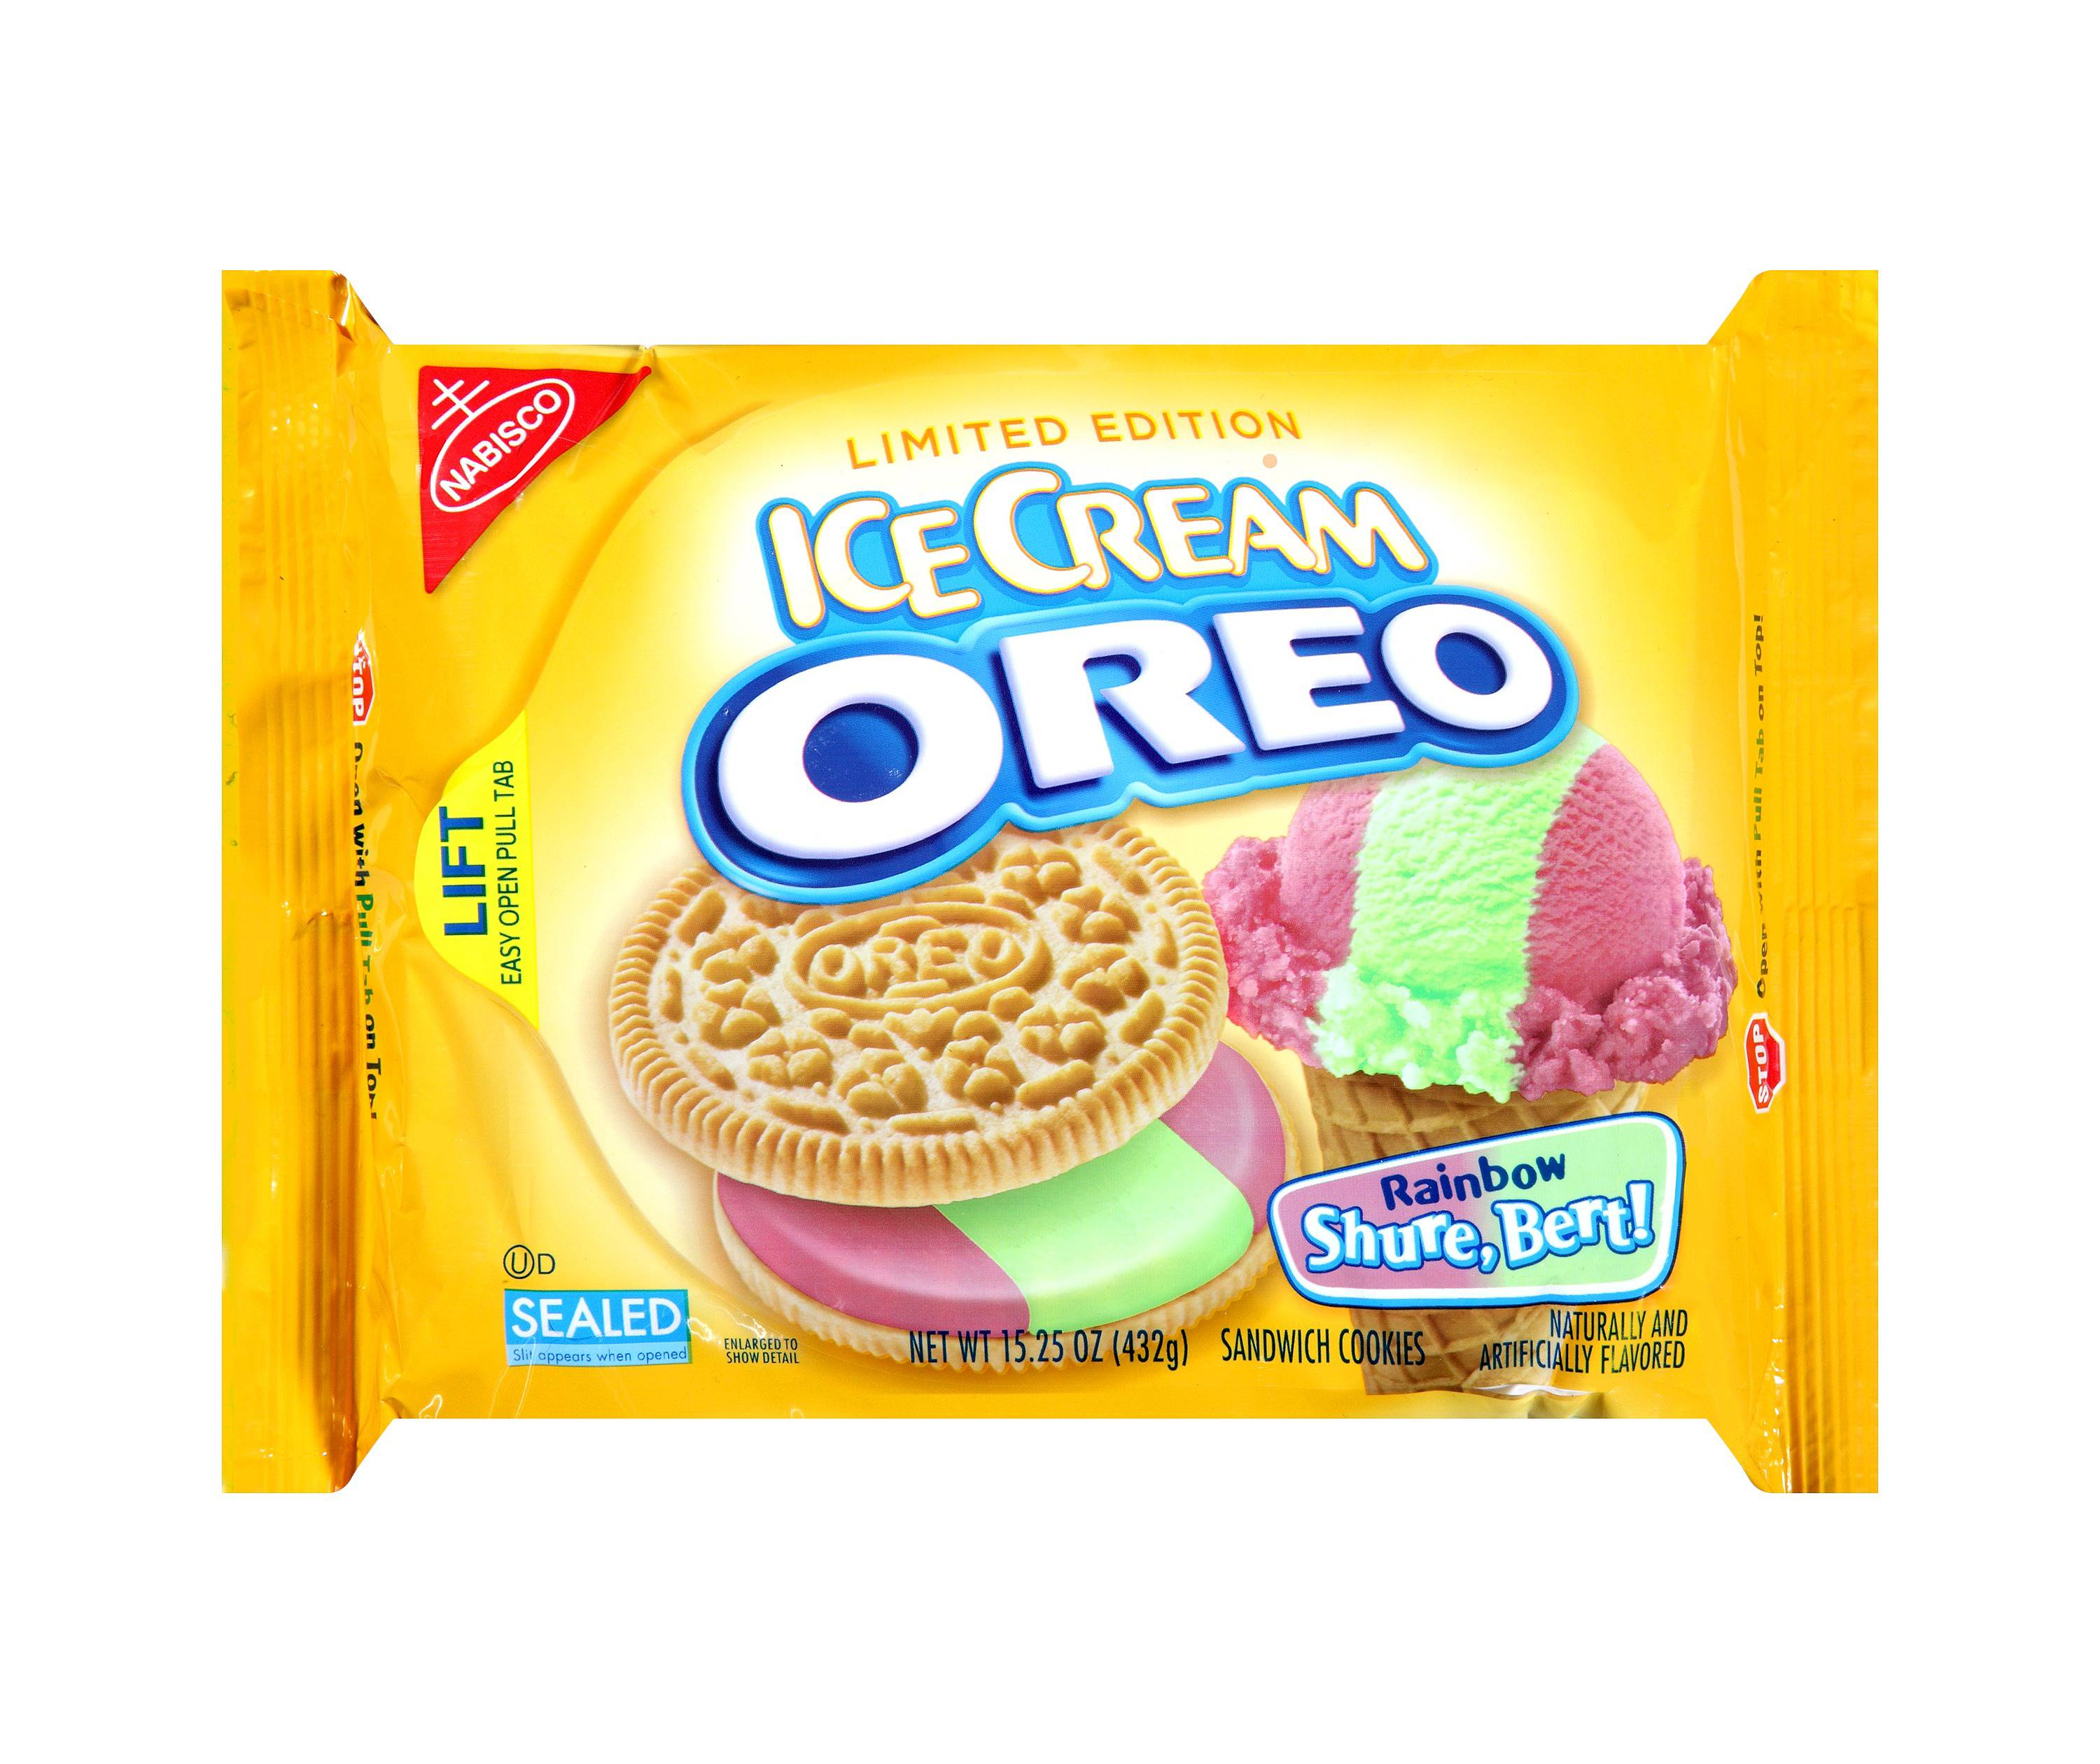 Rainbow shure bert ice cream oreo